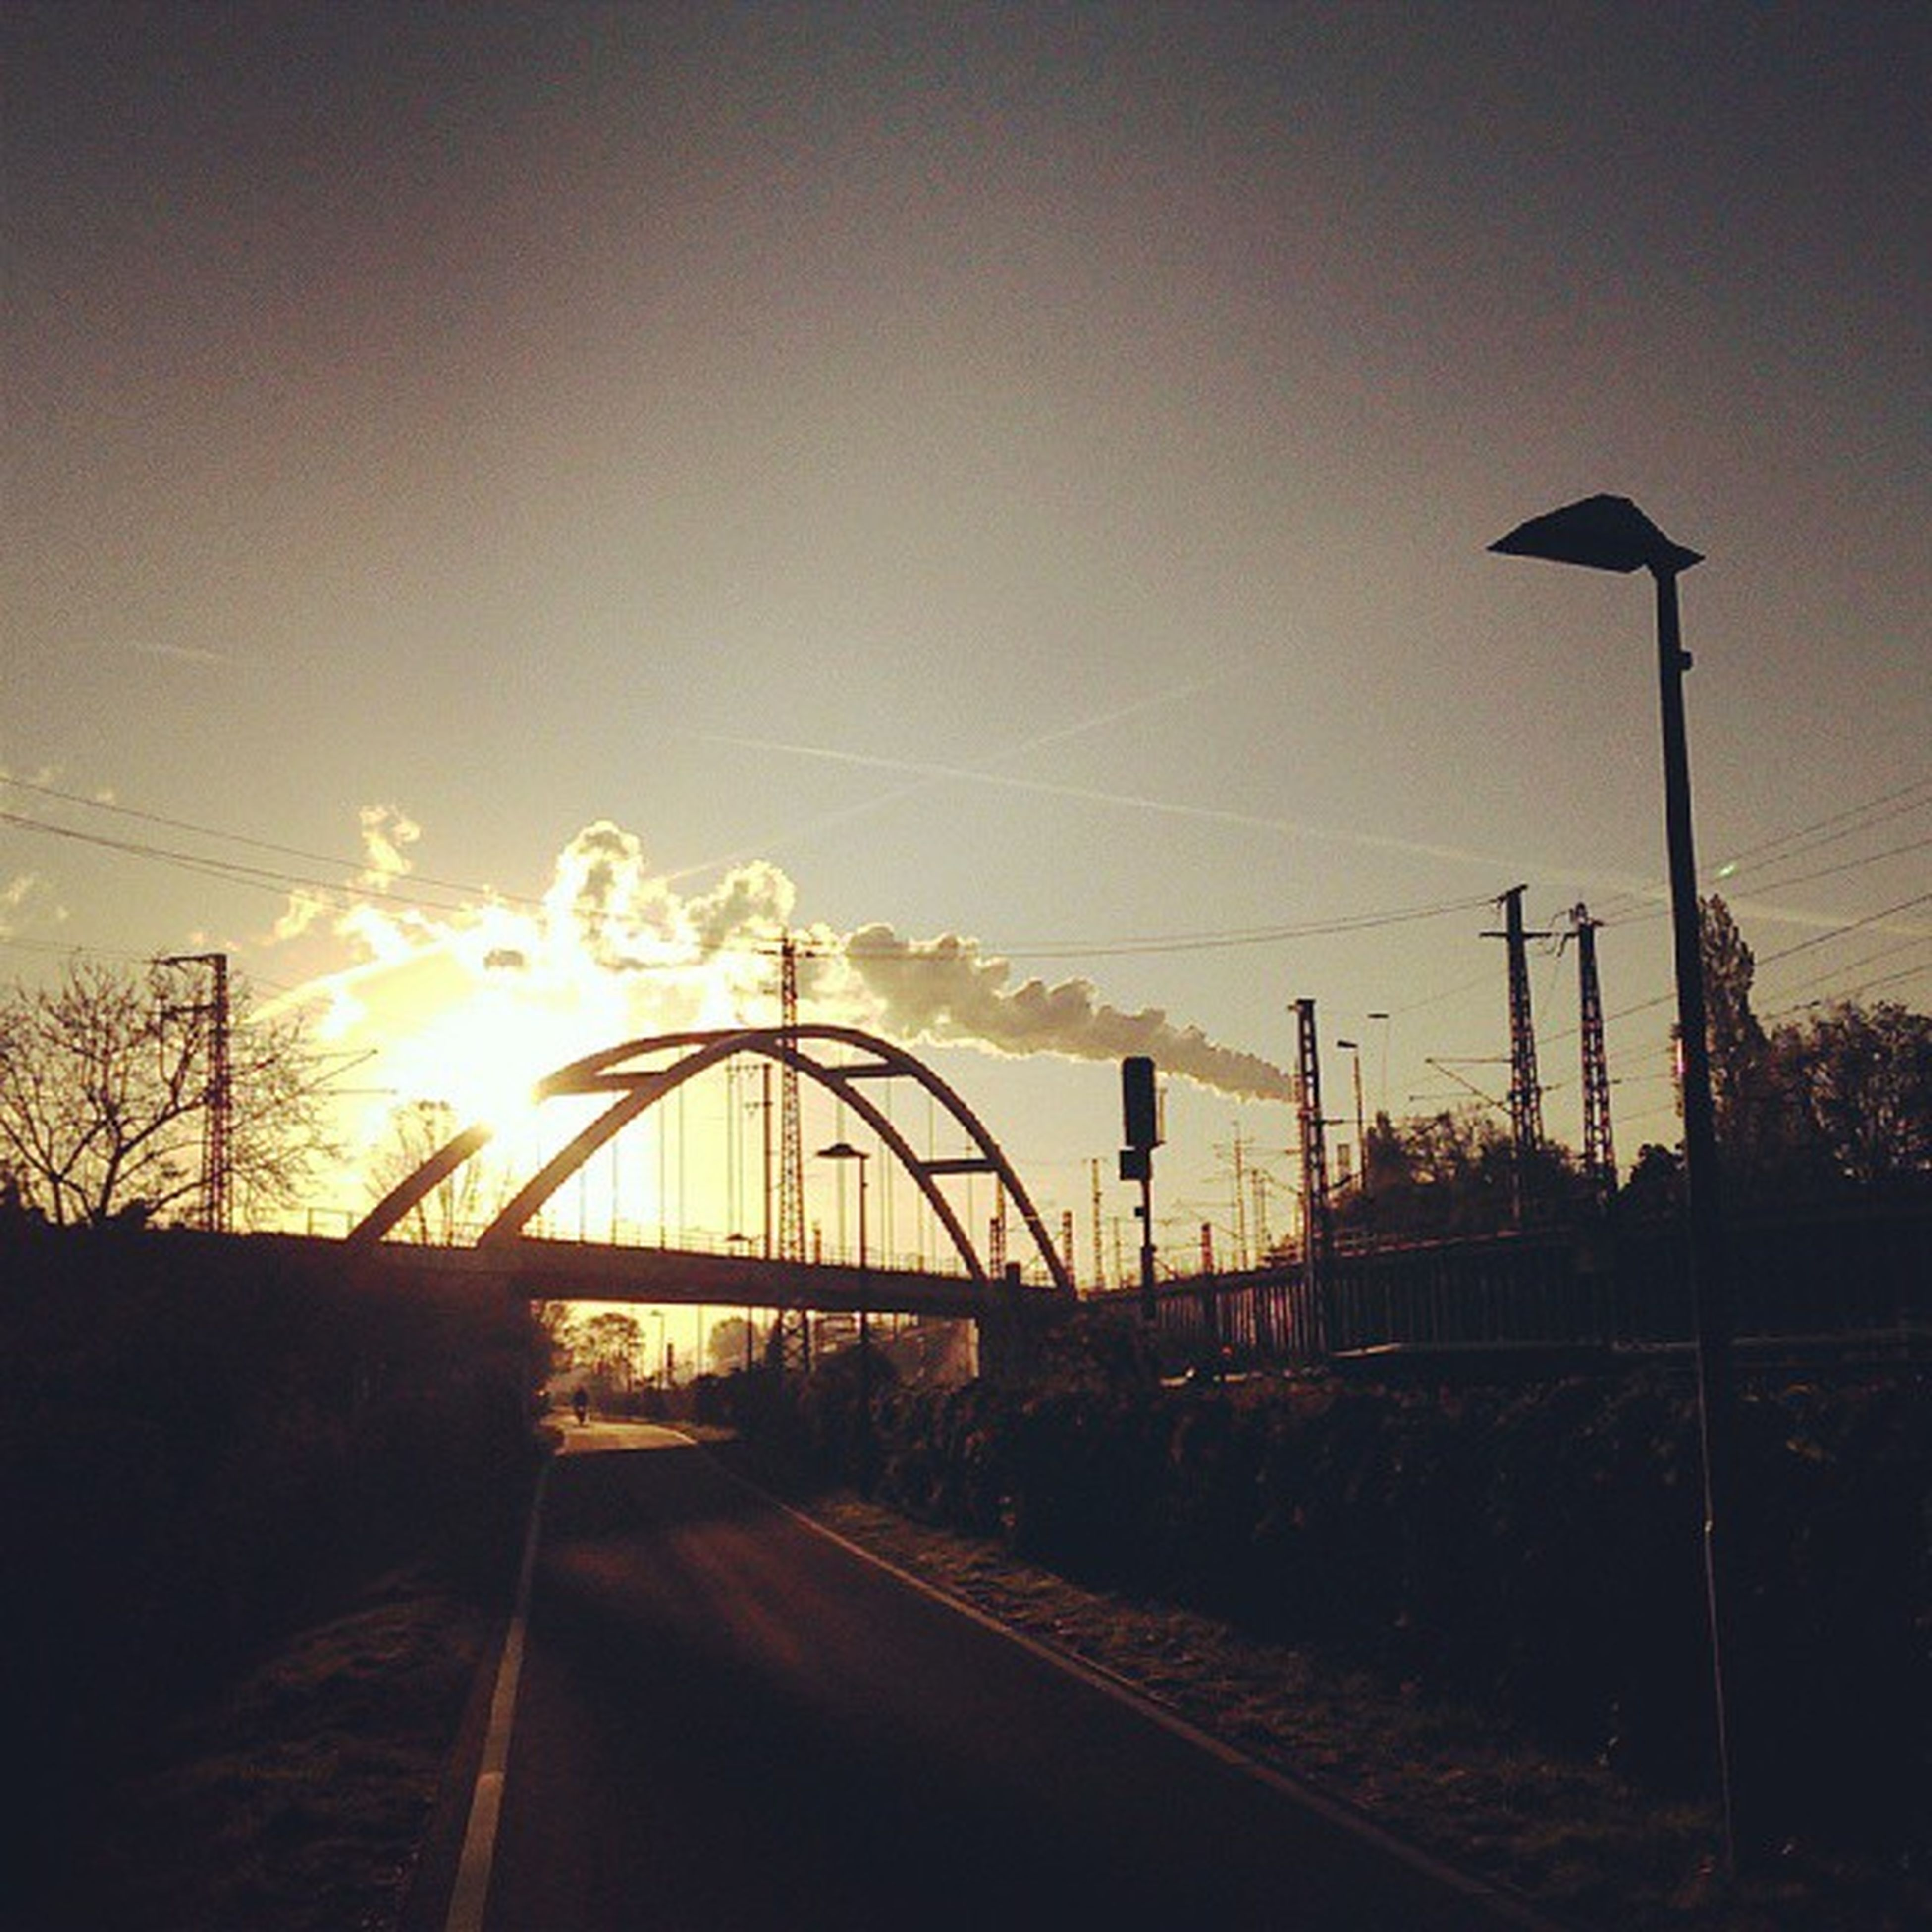 sunset, sun, sky, transportation, silhouette, road, the way forward, sunlight, connection, street light, electricity pylon, nature, sunbeam, outdoors, built structure, cloud - sky, orange color, tranquility, diminishing perspective, tree